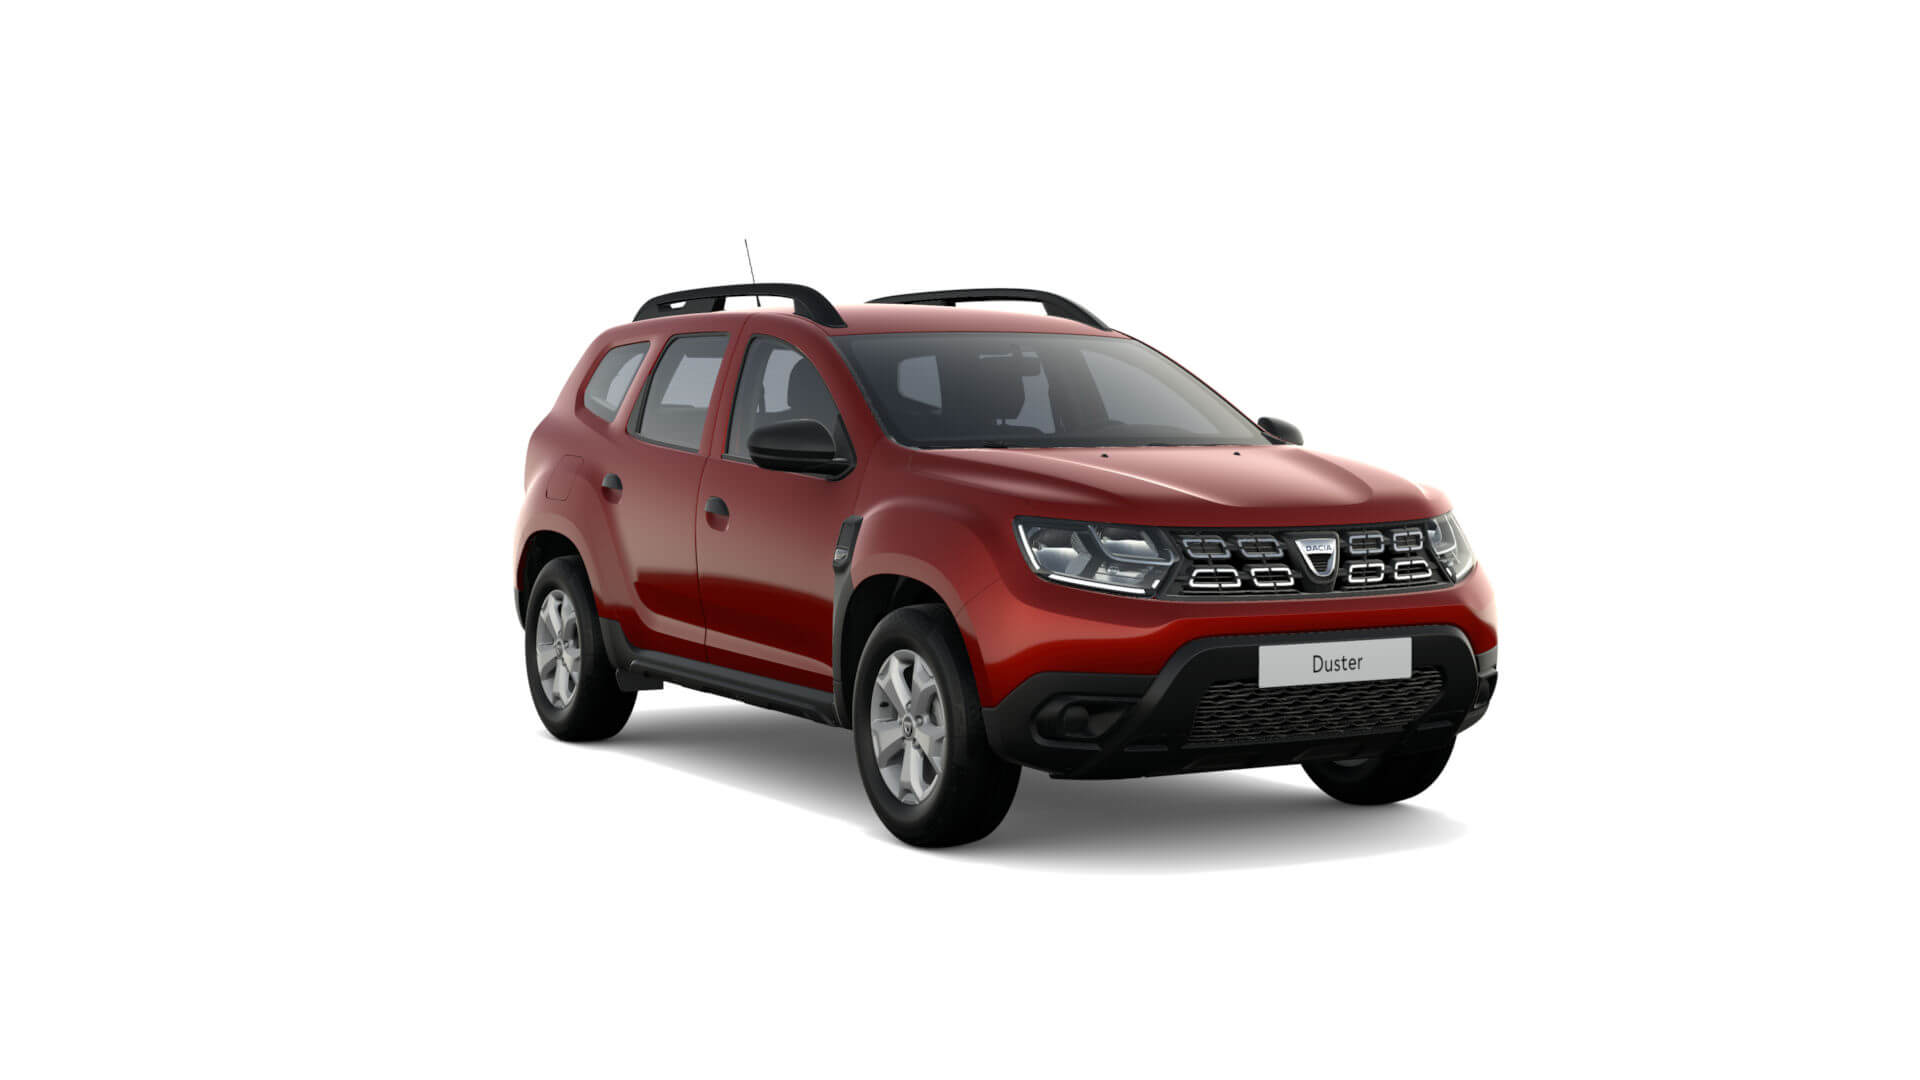 Automodell rot - Dacia Duster - Renault Ahrens Hannover